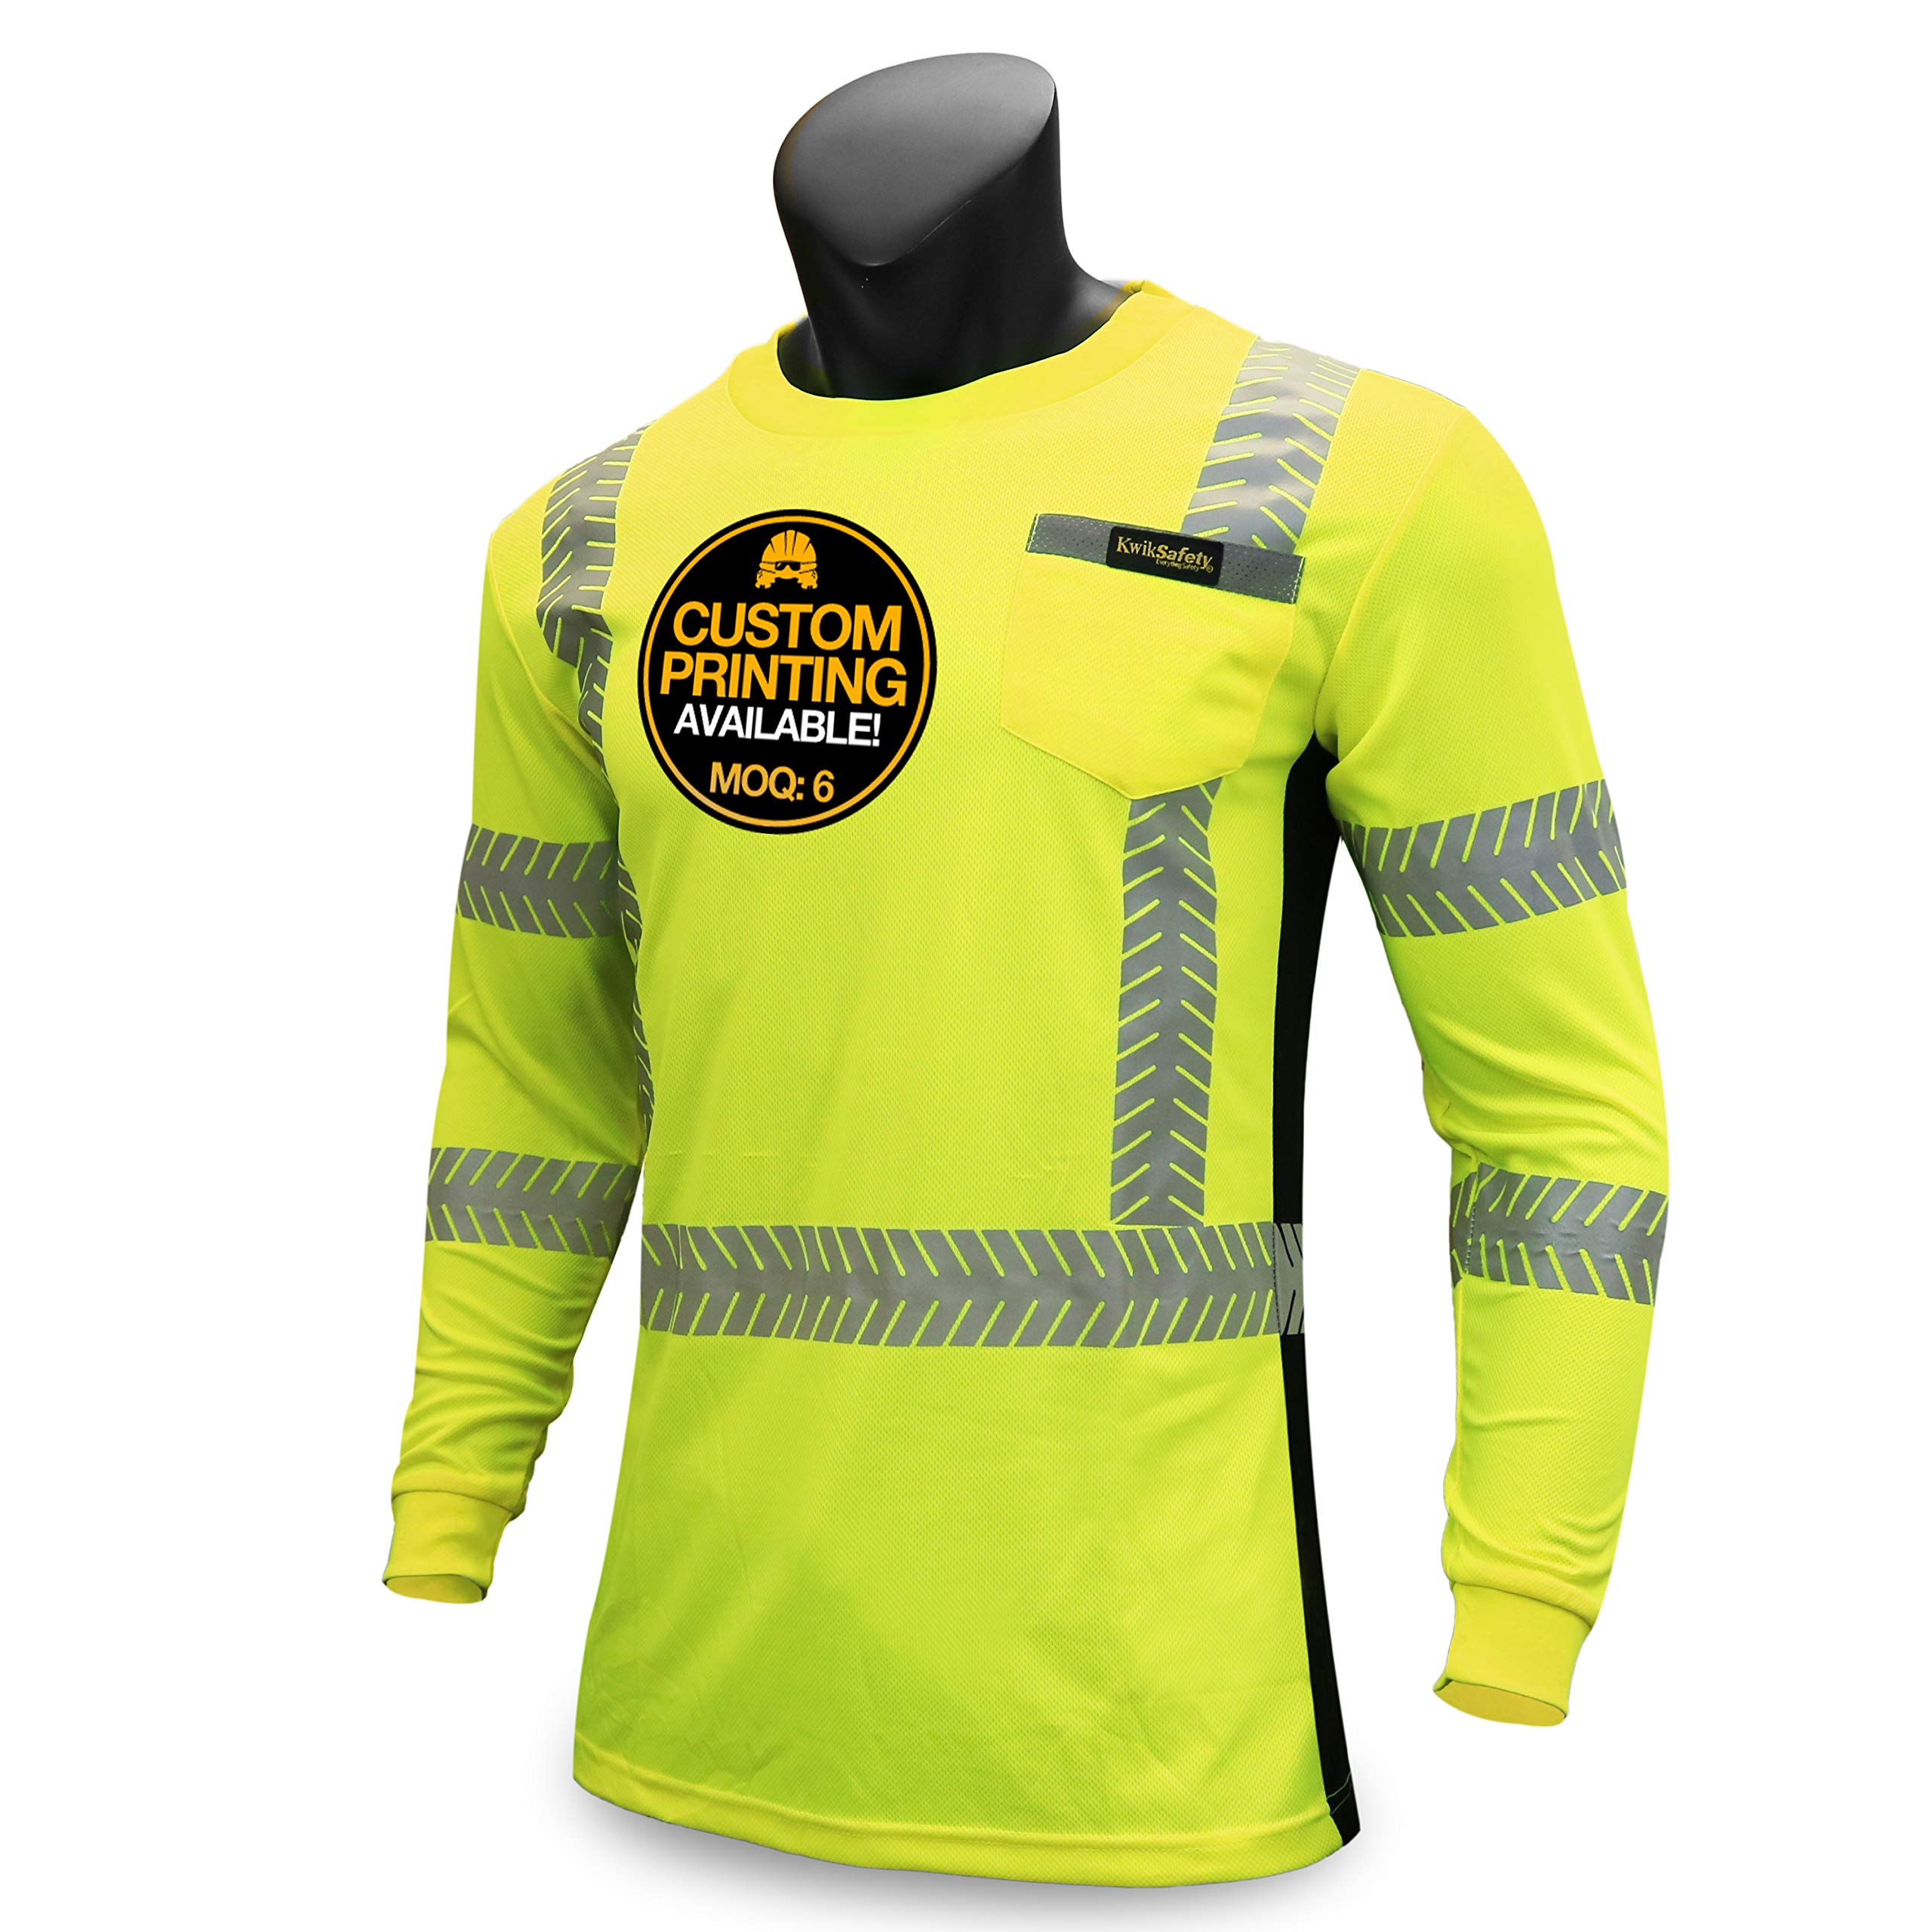 KwikSafety (Charlotte, NC) RENAISSANCE MAN (with POCKET) Class 3 ANSI High Visibility Safety Shirt Fishbone Reflective Tape Construction Security Hi Vis Clothing Men Long Sleeve Yellow Black Large